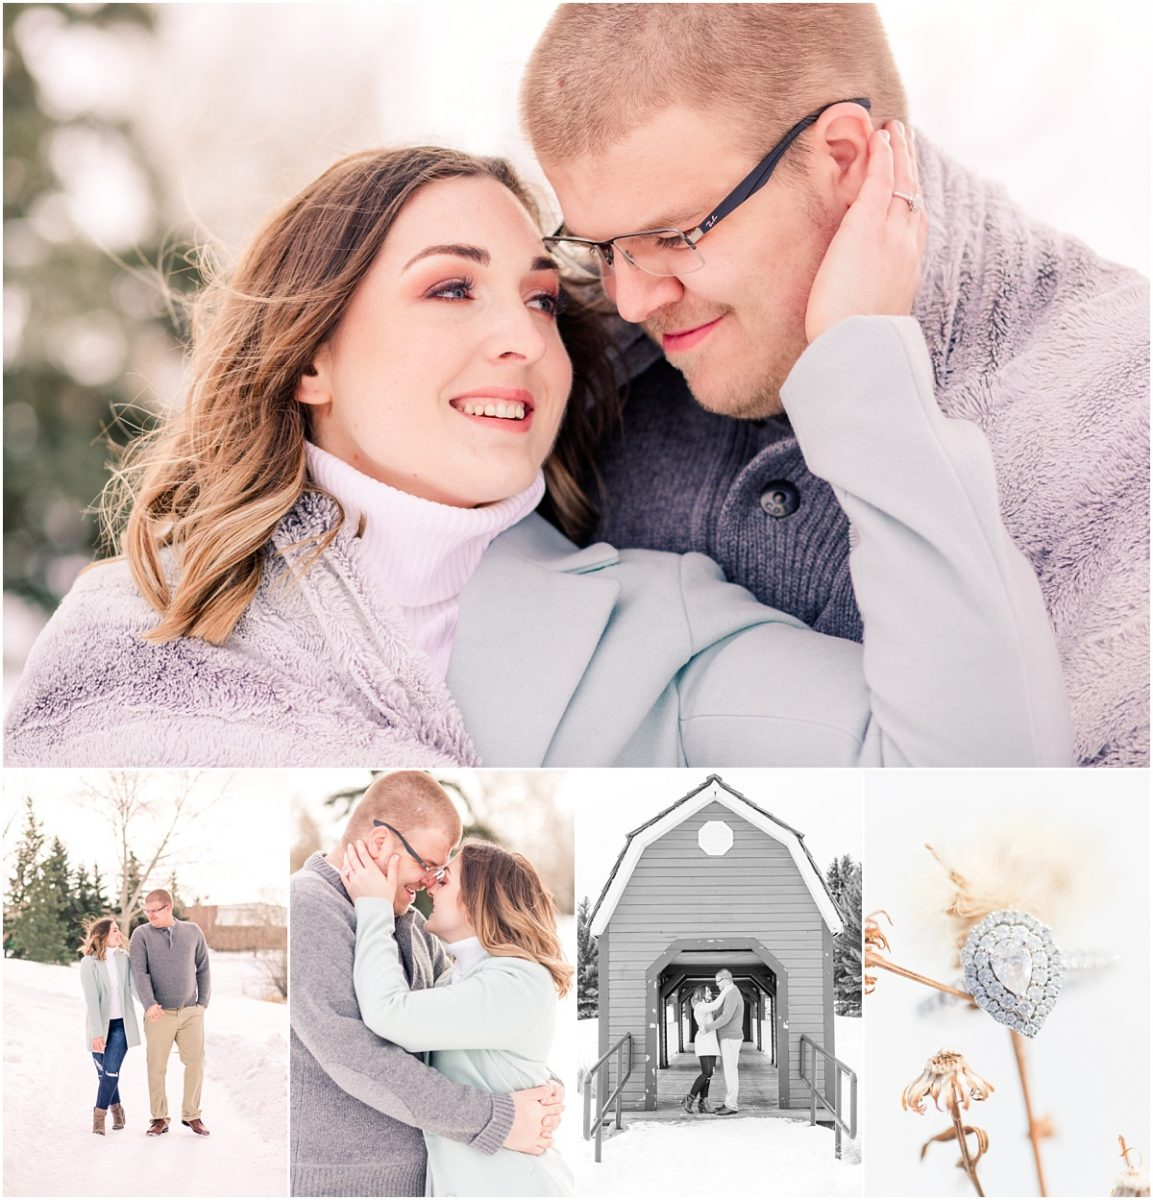 edmonton engagement session at the woodbridge park with zack and jillian red barn with dog willow engaged